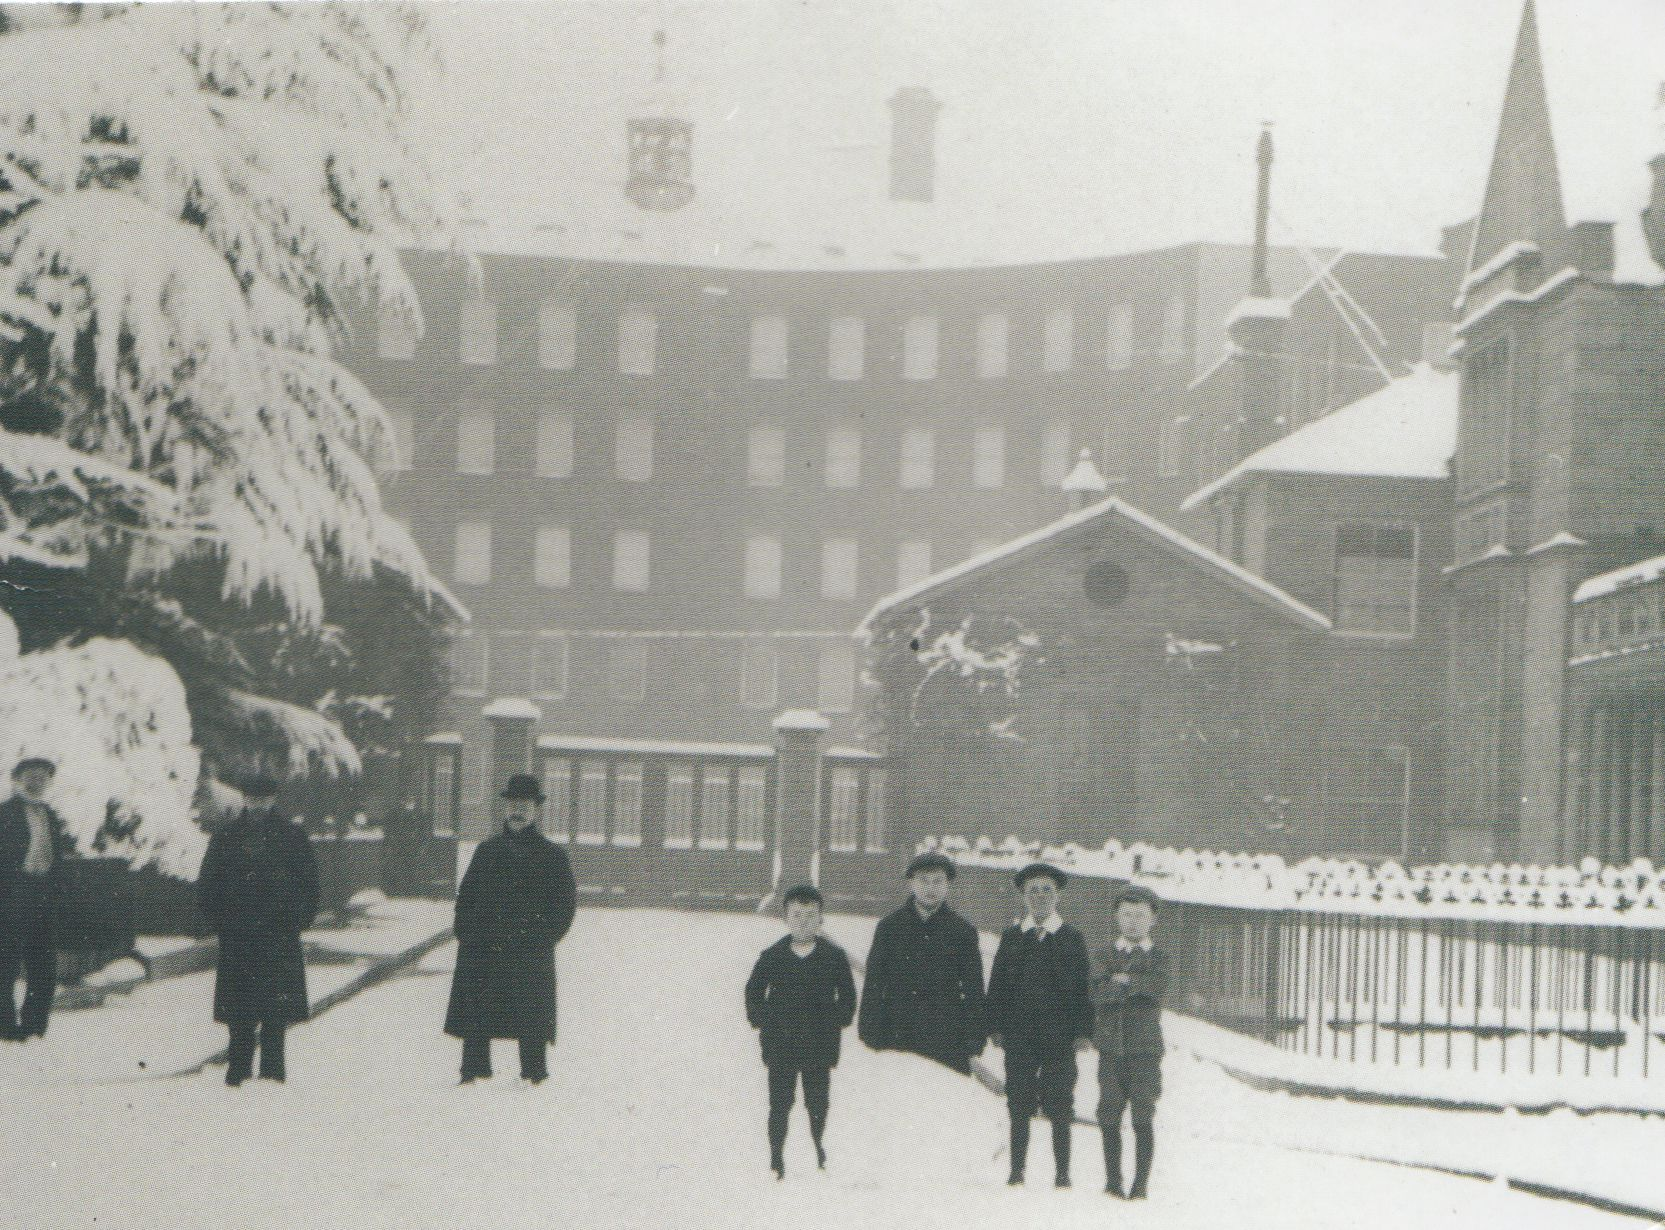 tiverton_in_snow_0001.jpg